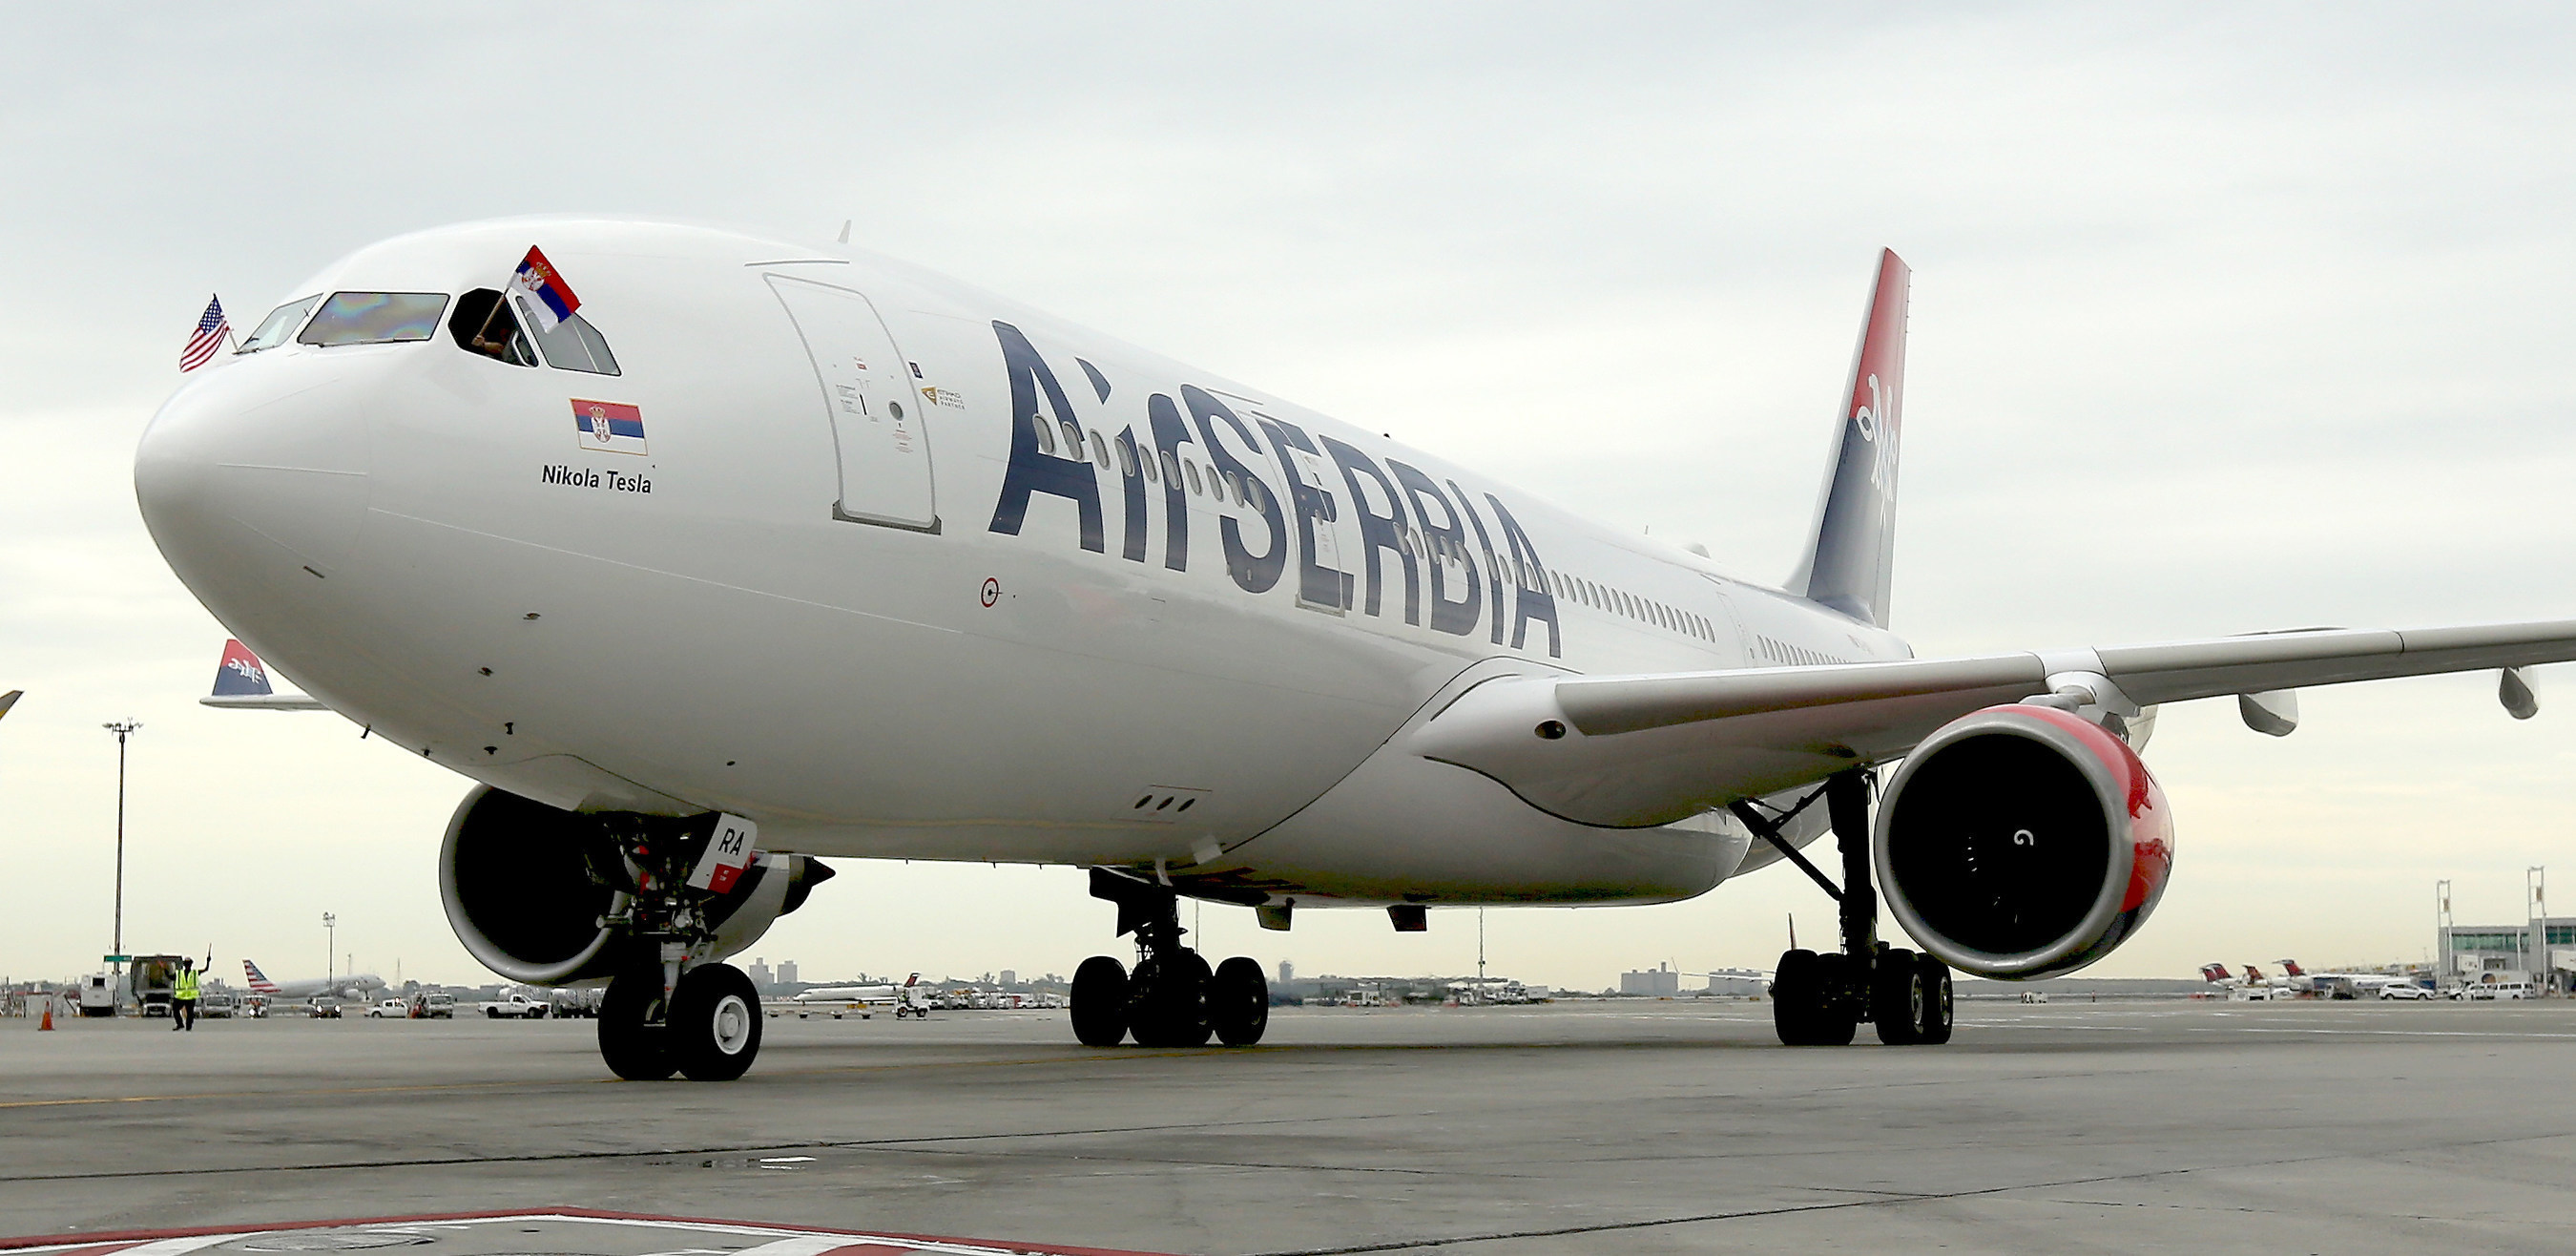 With Serbian and American flags flying high, Air Serbia's first flight JU 500 from Belgrade to New York taxis to a stop at JFK International Airport.